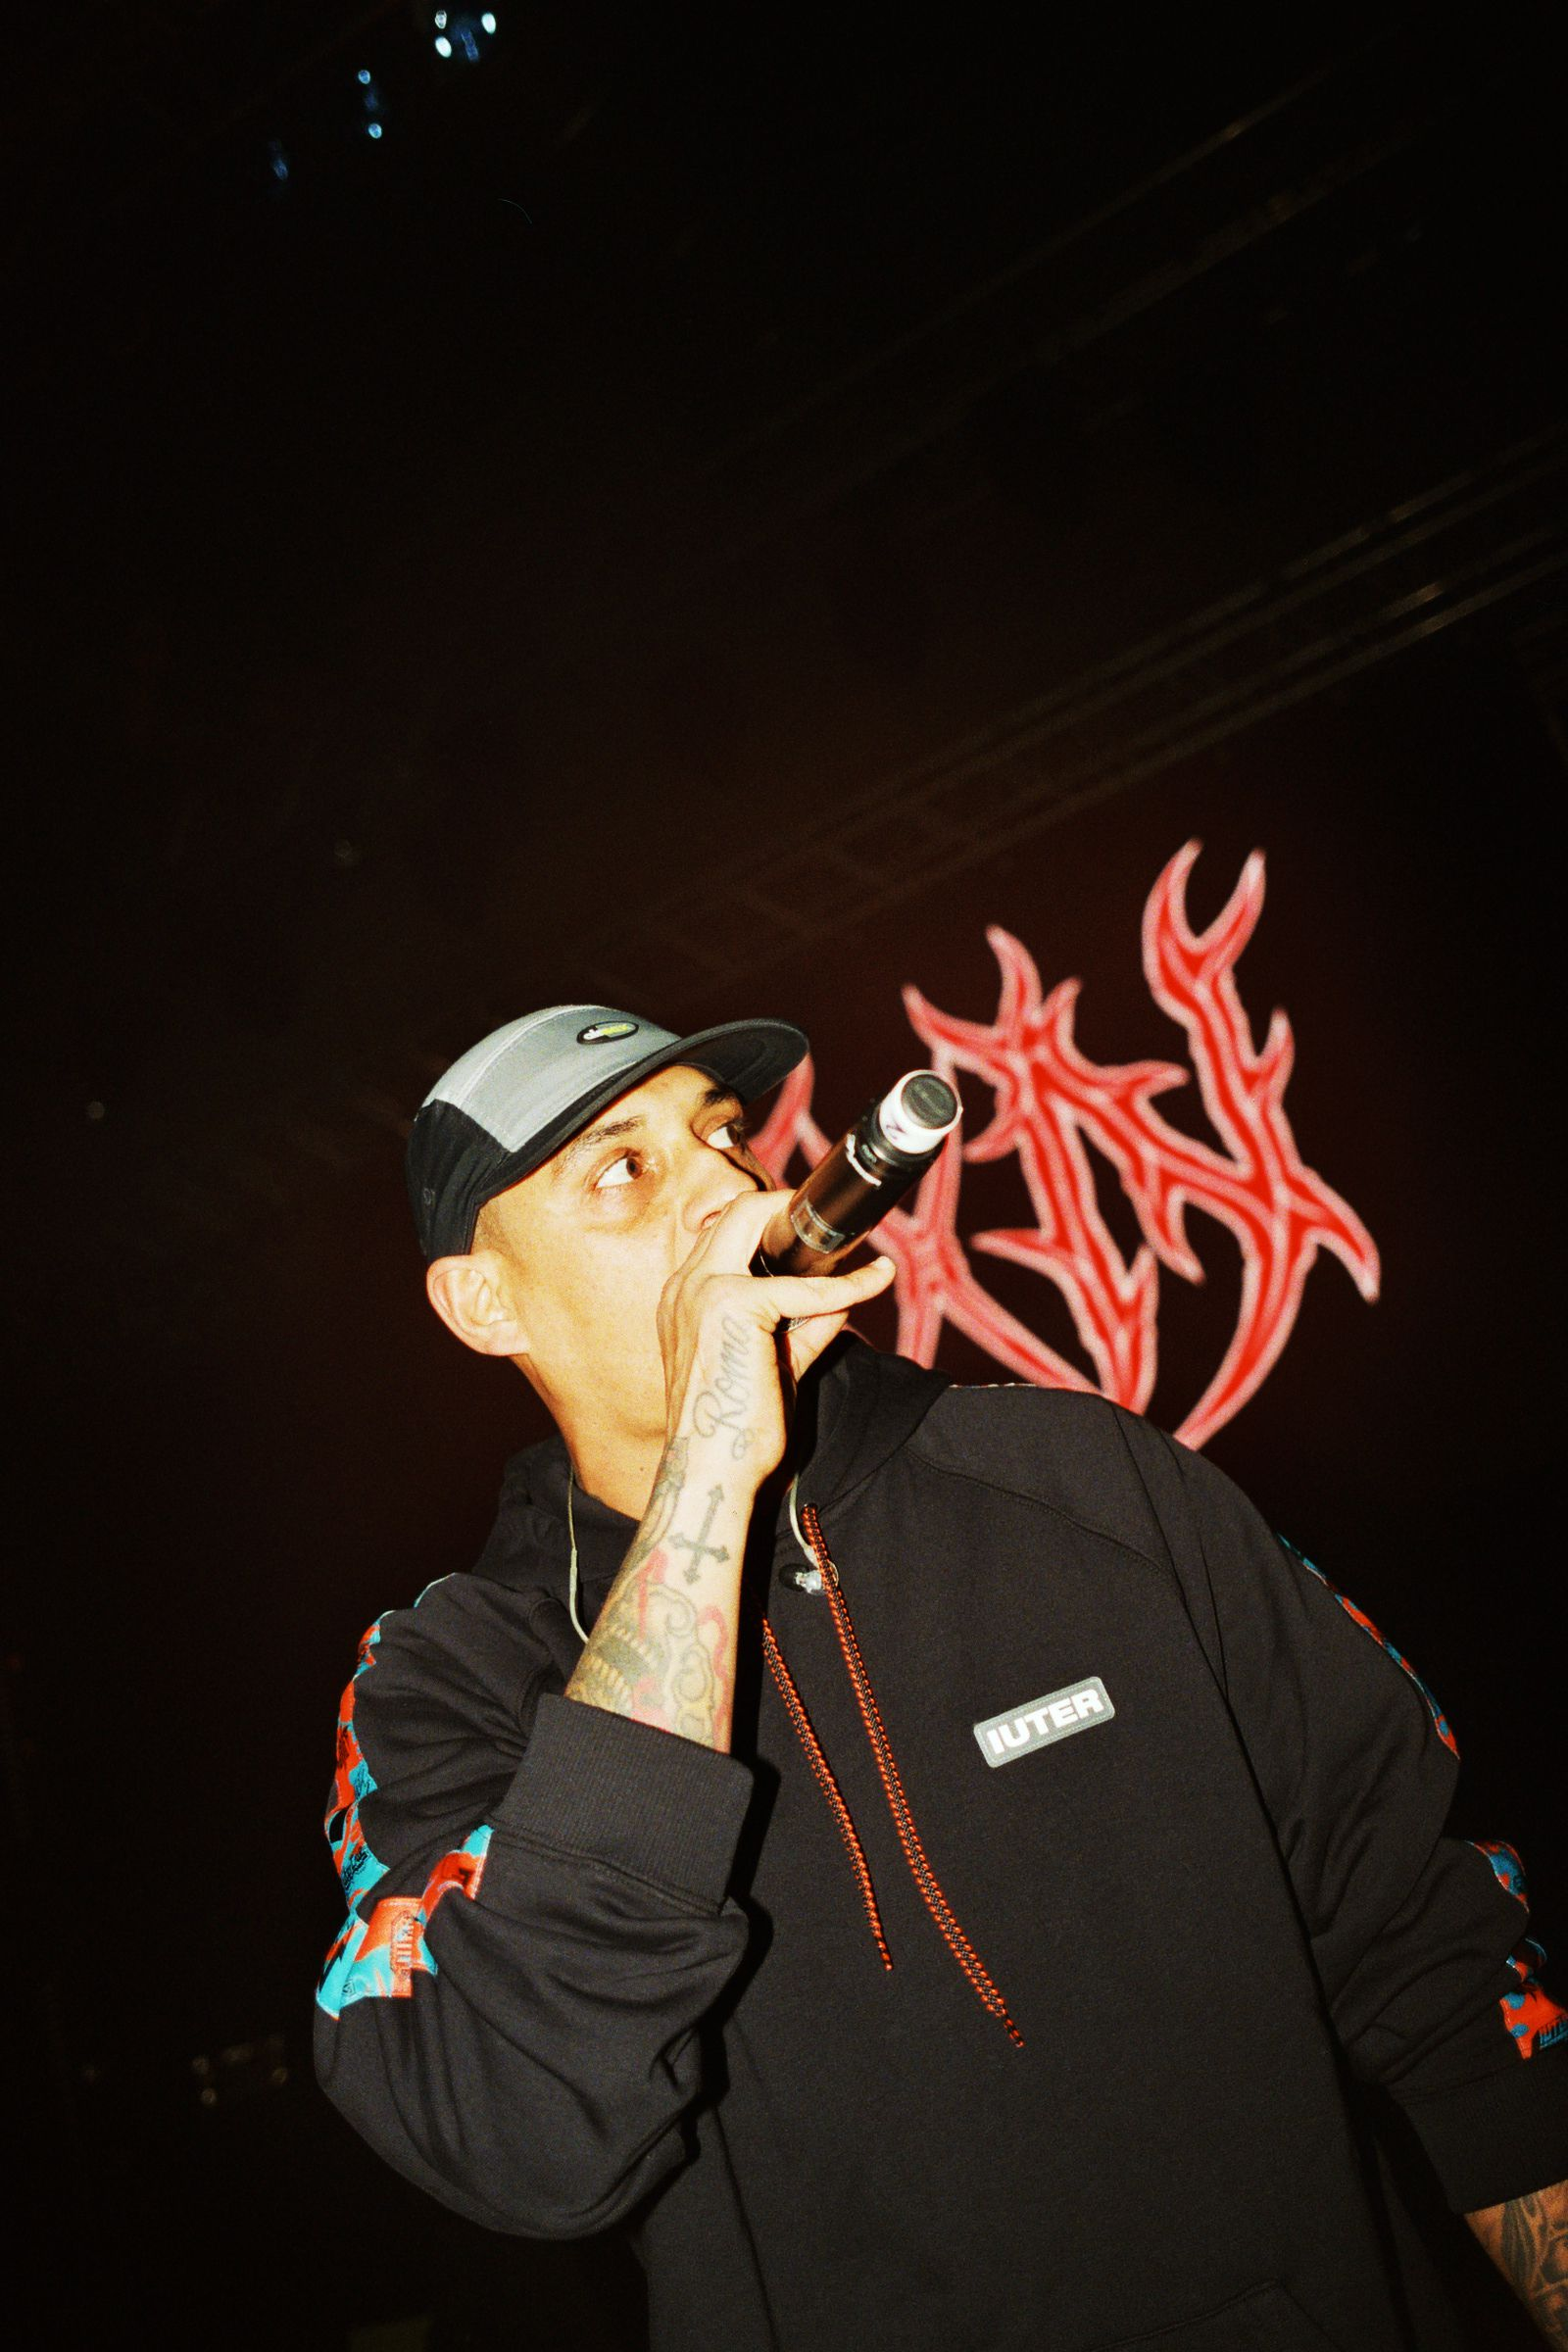 Noyz Narcos, livin' legend on stage Enemy tour at Alcatraz, Milano